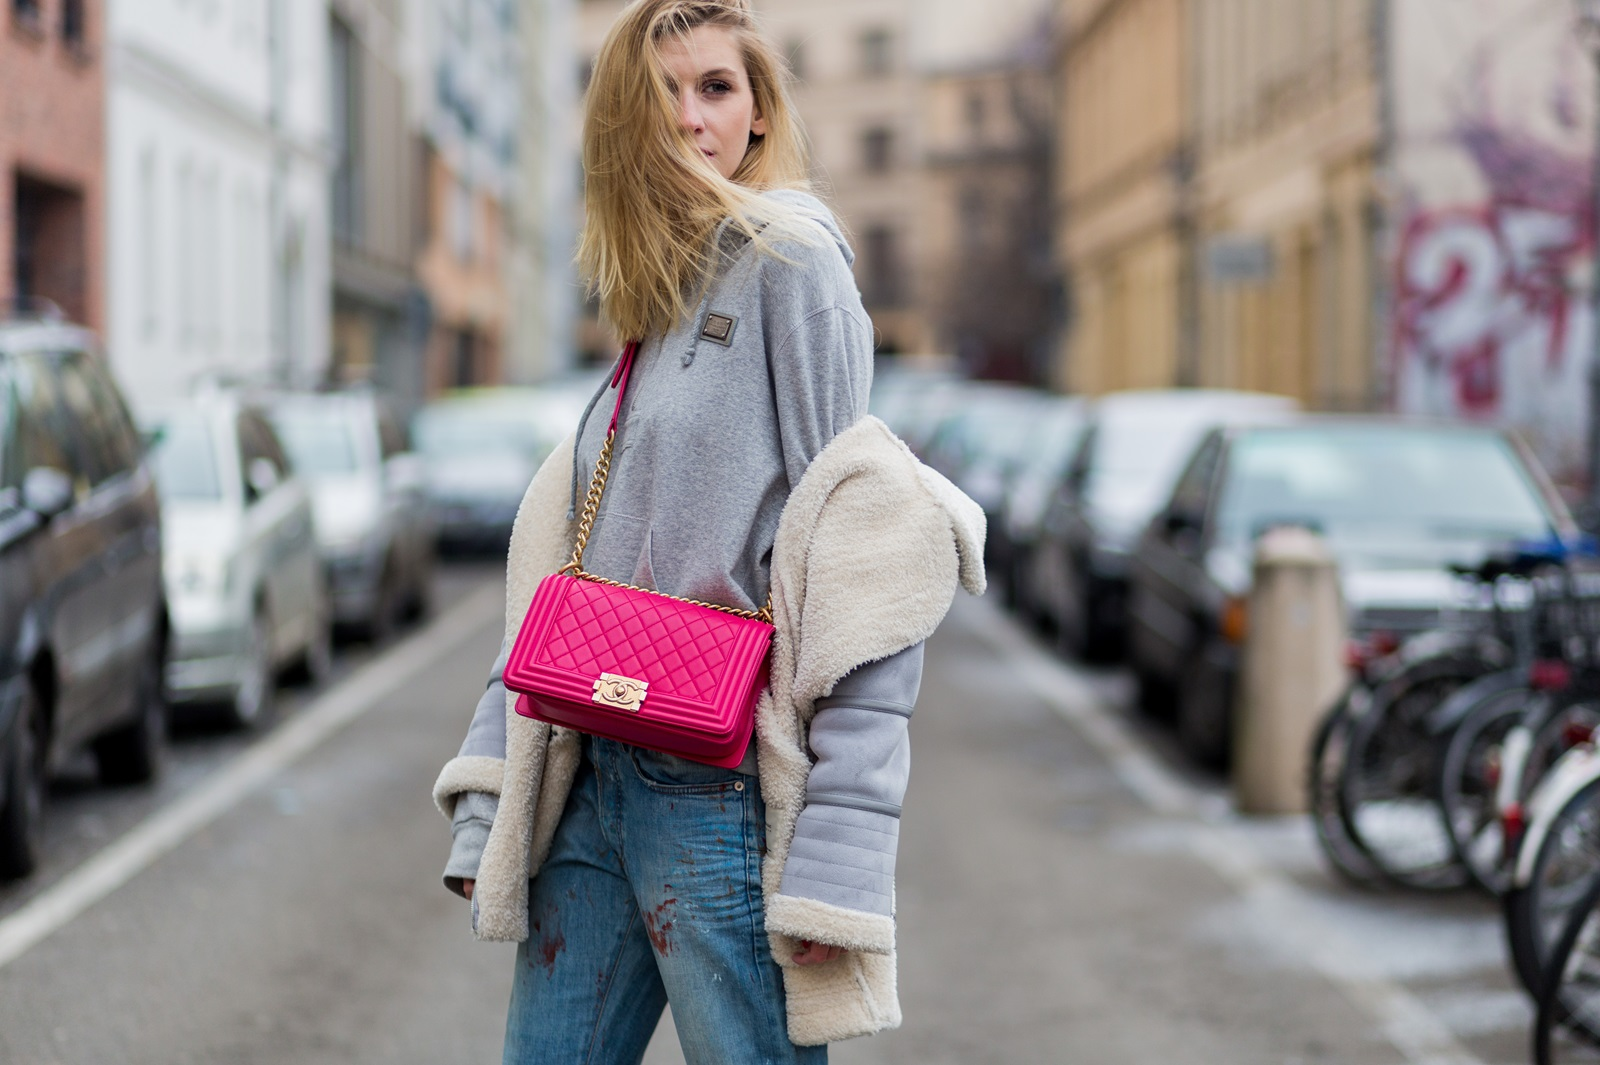 BERLIN, GERMANY - JANUARY 19: Kimyana Hachmann wearing Dior denim jeans, pink Chanel bag, Adidas Stan Smith sneaker, Zara jacket, Dolce & Gabbana hoody, during the Mercedes-Benz Fashion Week Berlin A/W 2017 at Kaufhaus Jandorf on January 19, 2017 in Berlin, Germany. (Photo by Christian Vierig/Getty Images) *** Local Caption *** Kimyana Hachmann